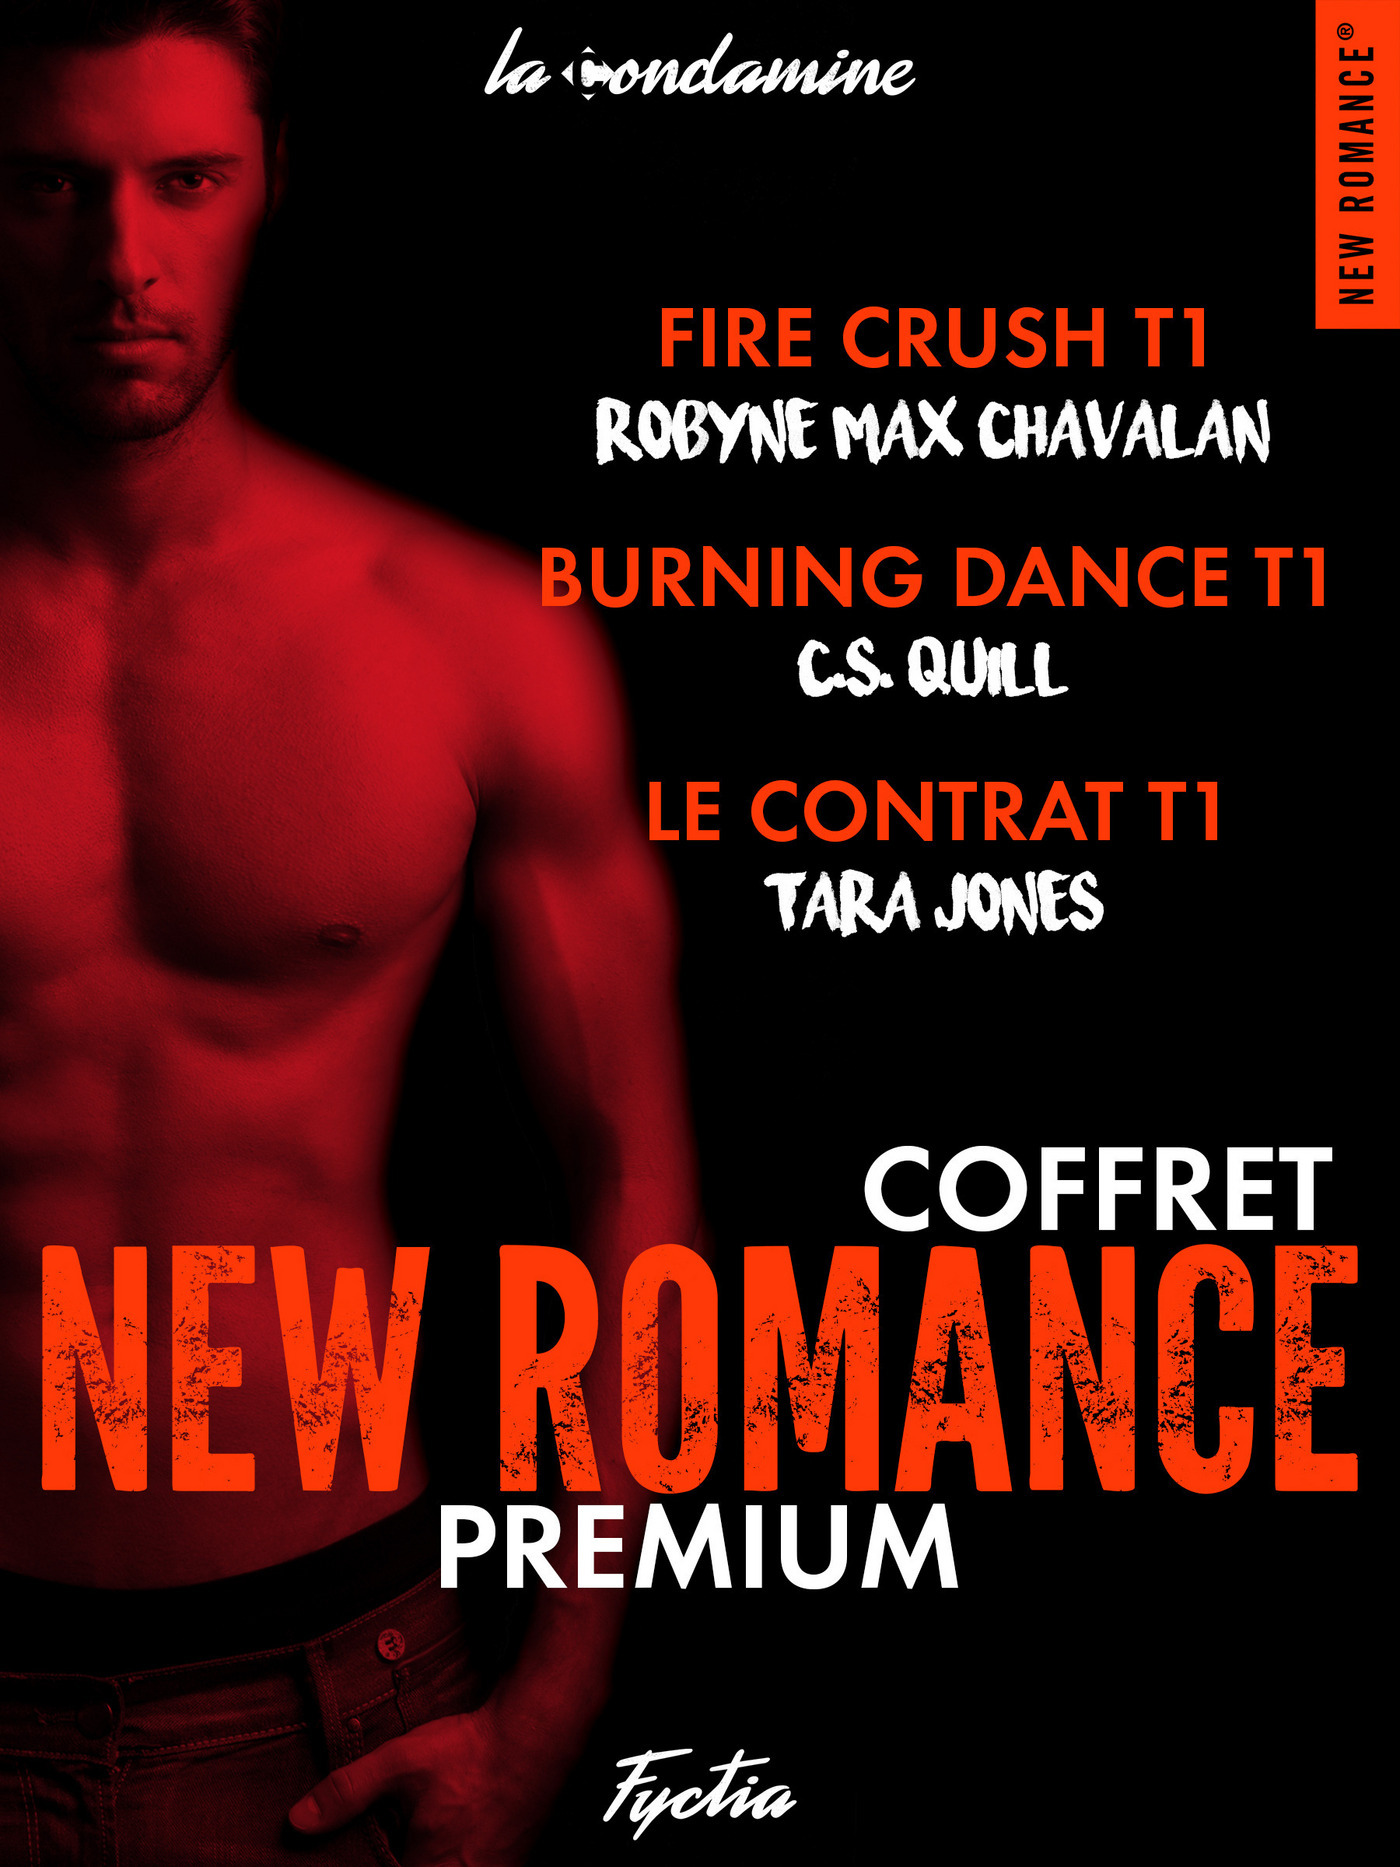 Coffret New Romance Premium